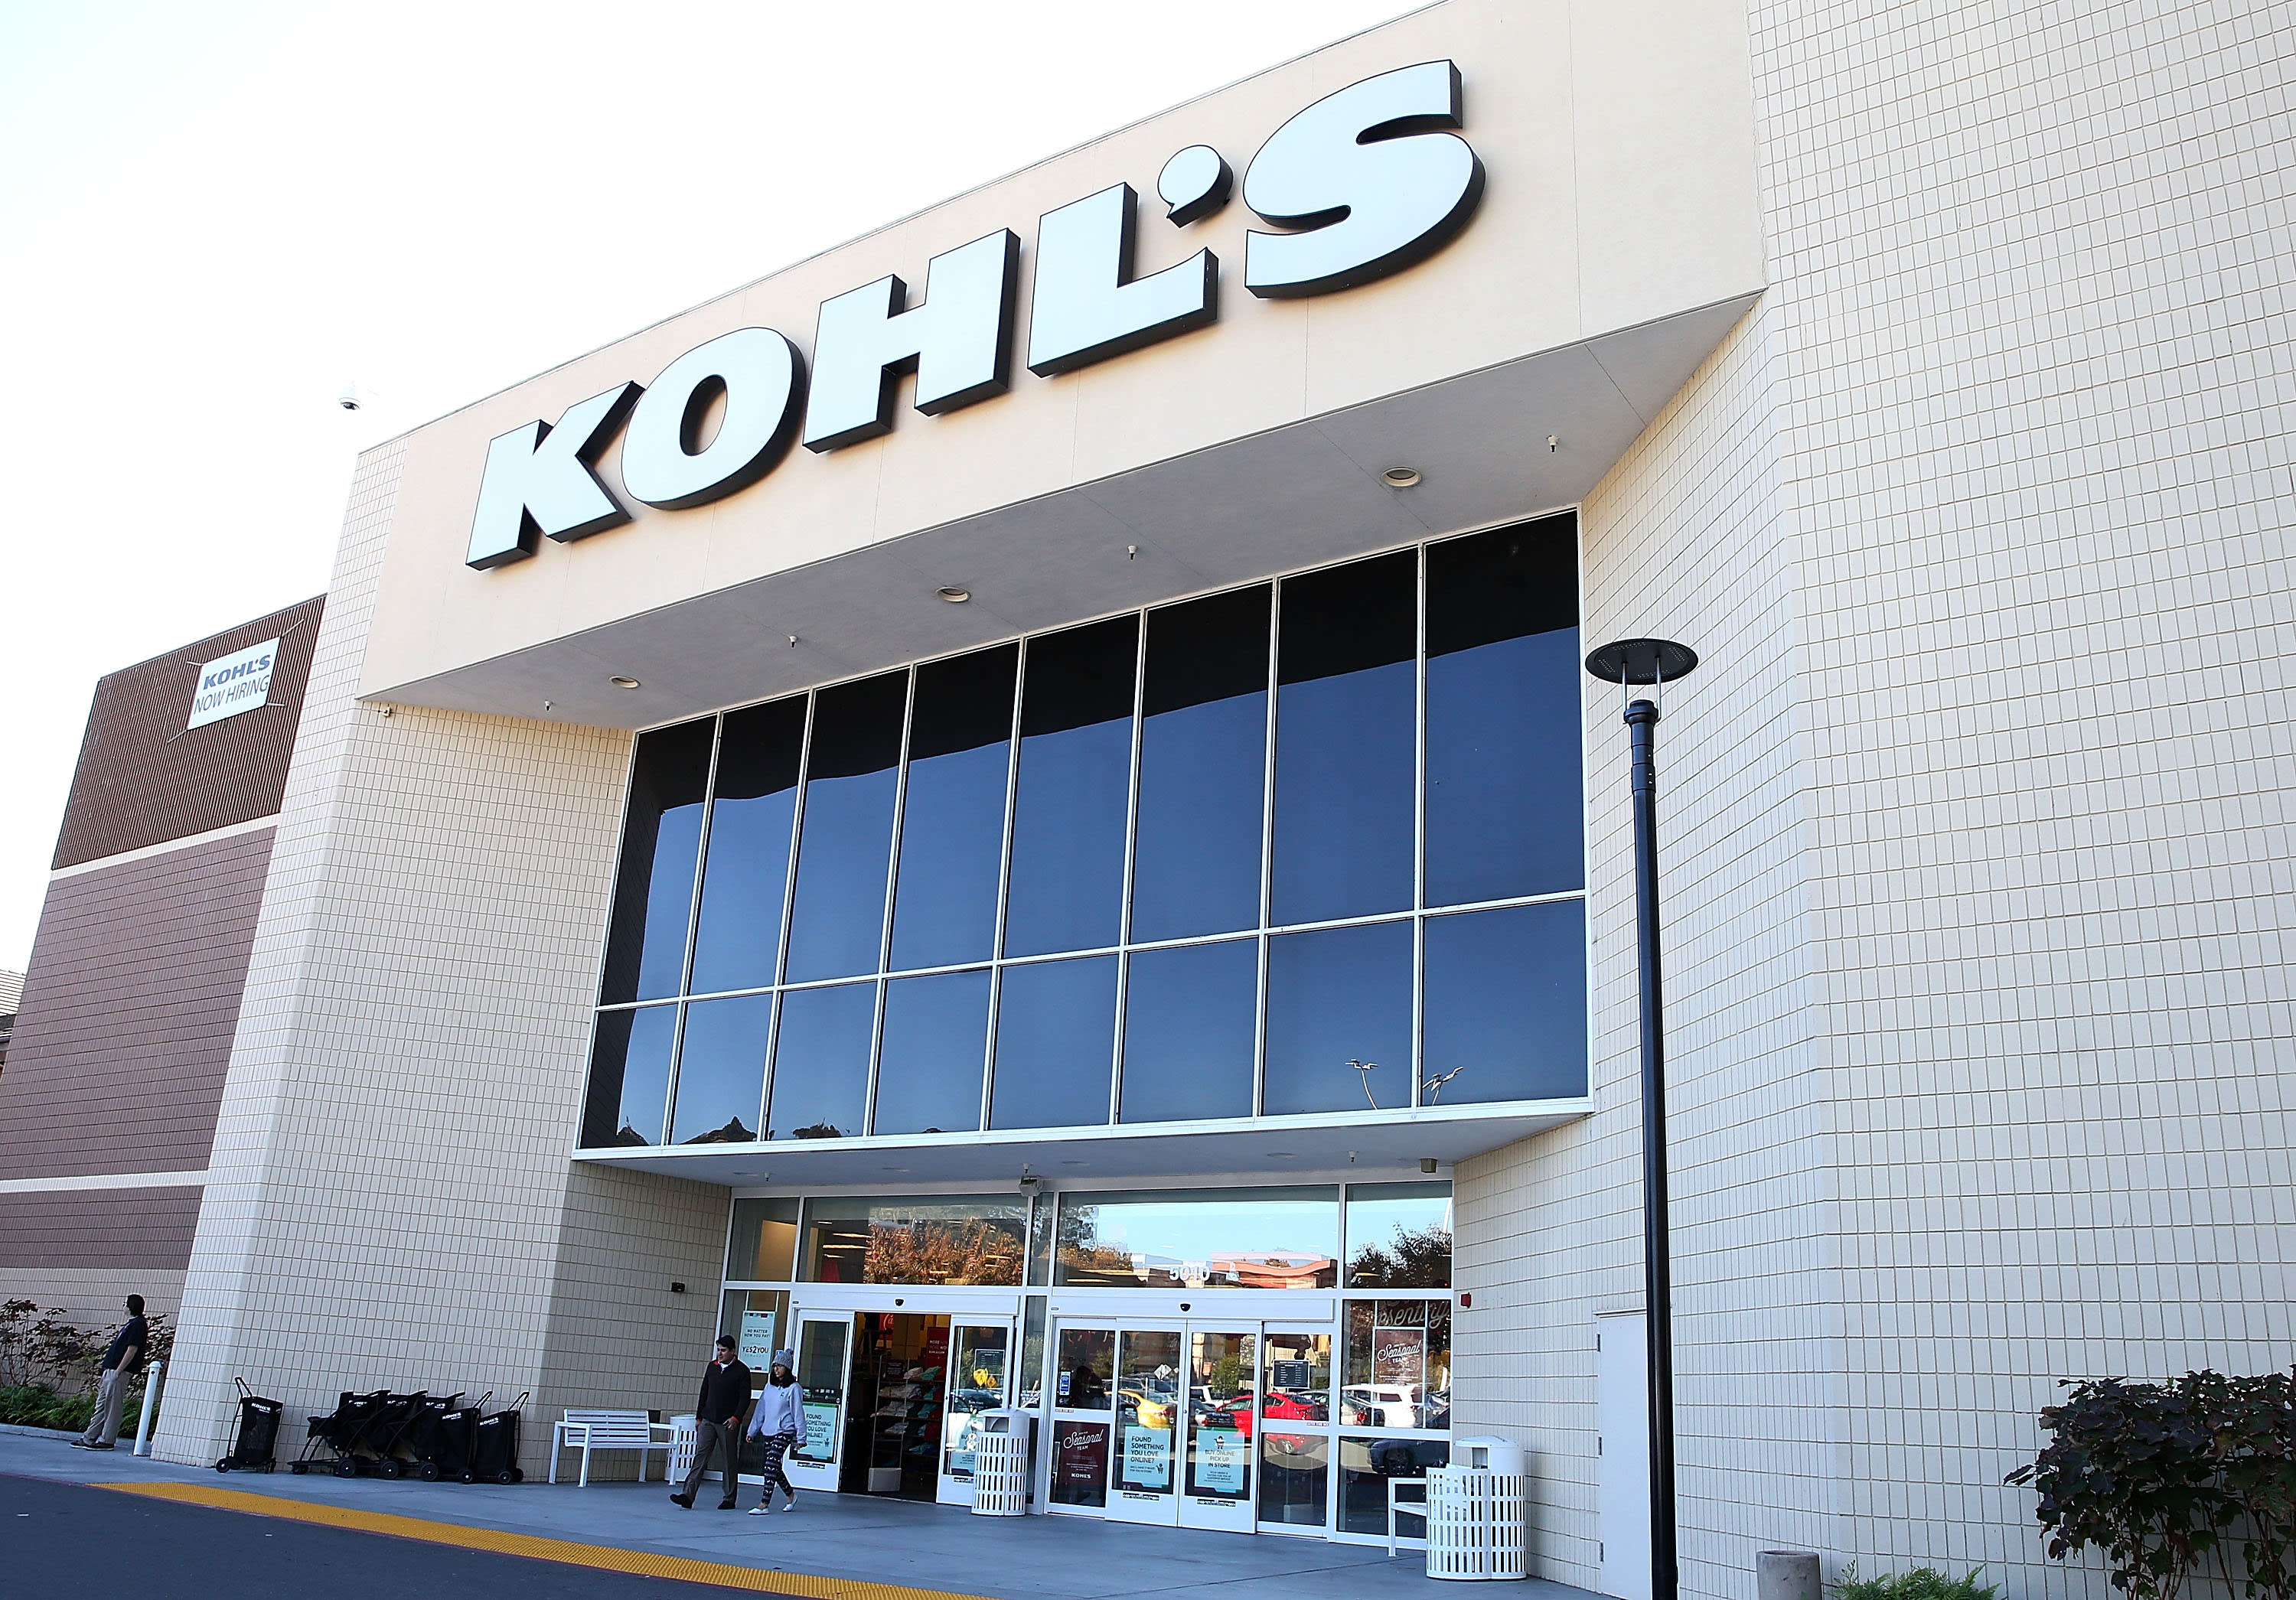 Kohl's shares rise after retailer posts better-than-expected earnings sees sales growth in 2021 – CNBC